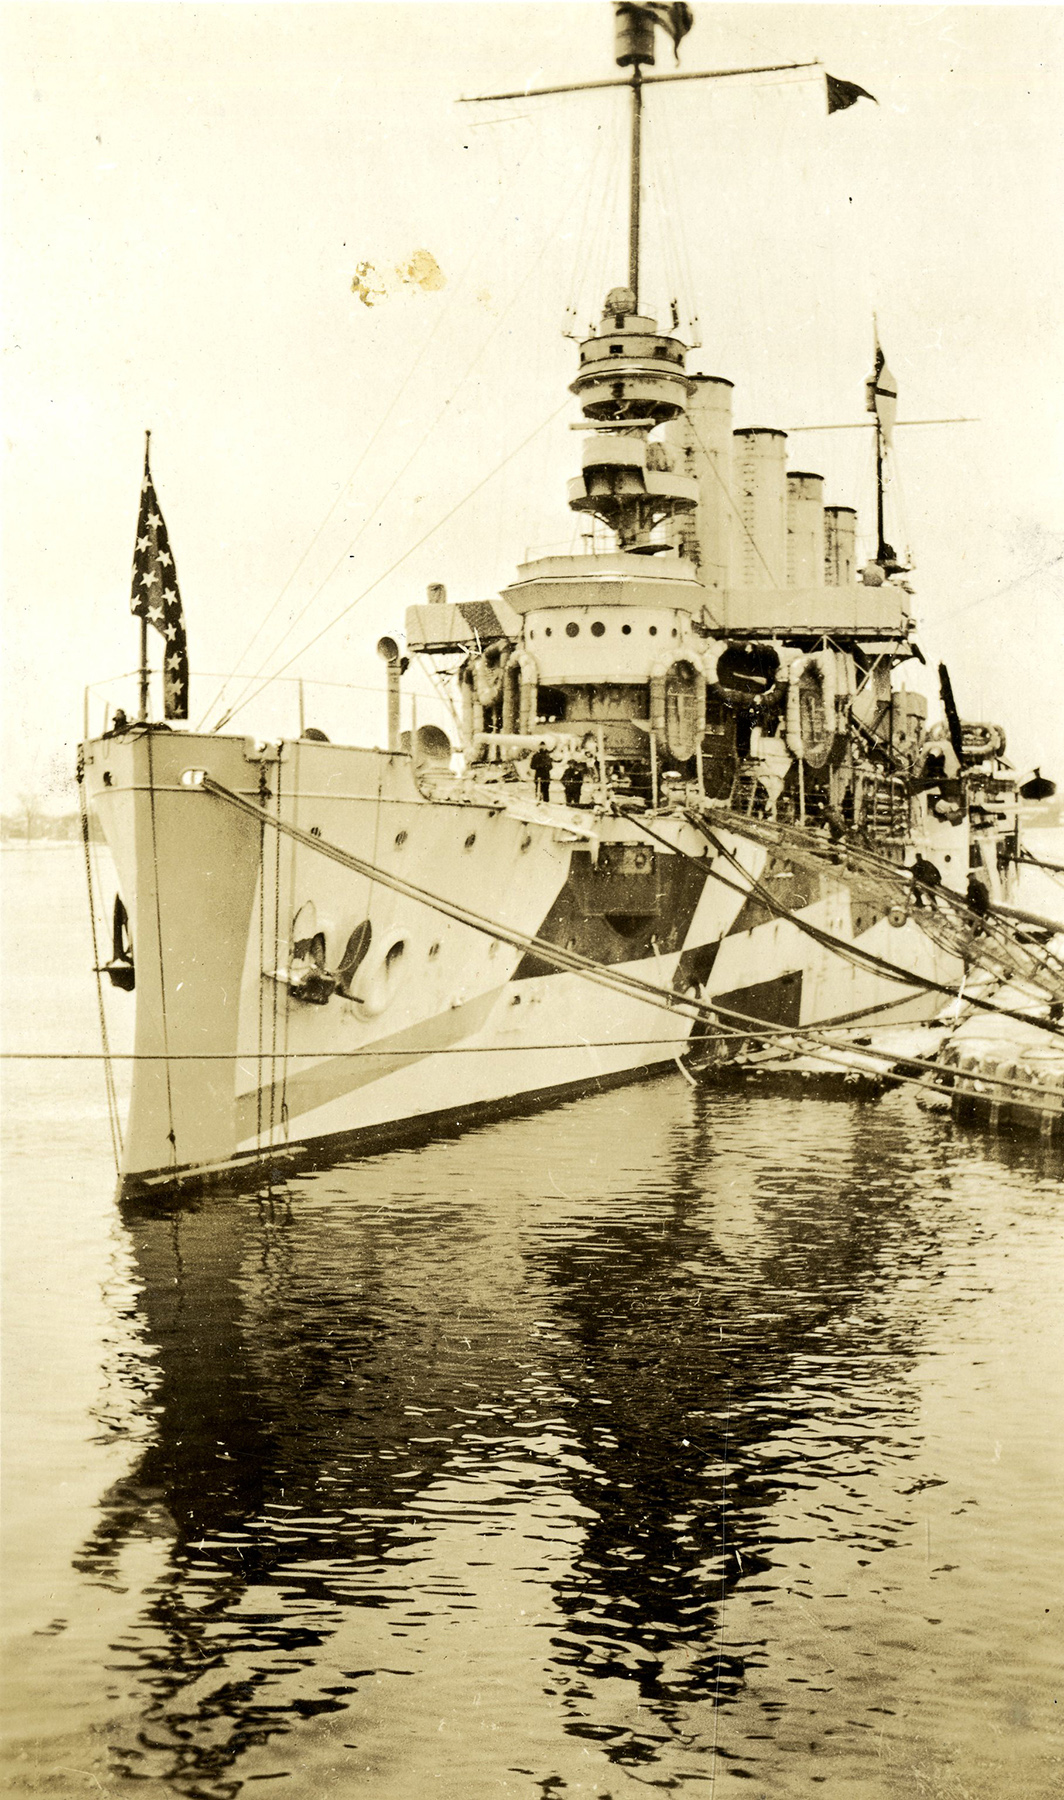 Dazzle Camouflage On Troop Ships National Museum Of The Us Air